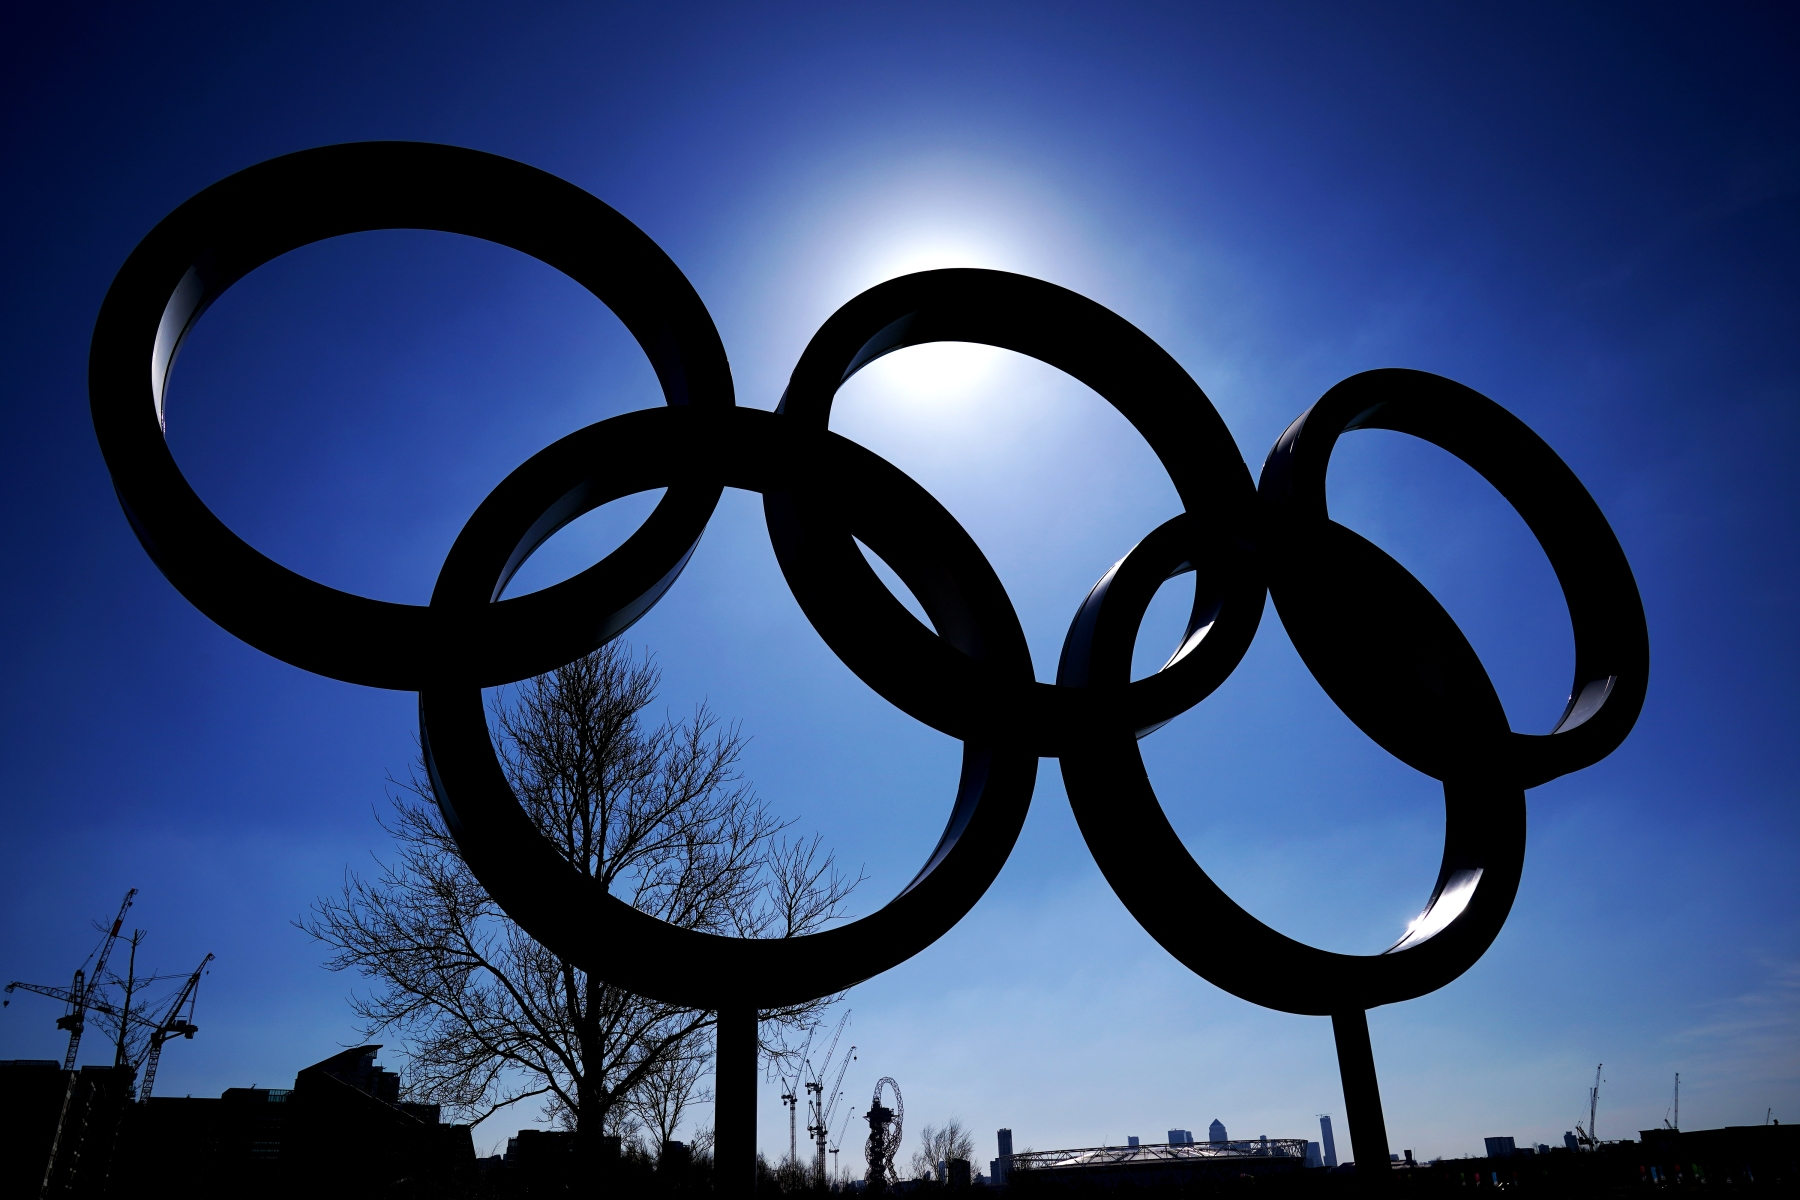 IOC Member: 2020 Tokyo Olympics Will Be Postponed Due to Pandemic